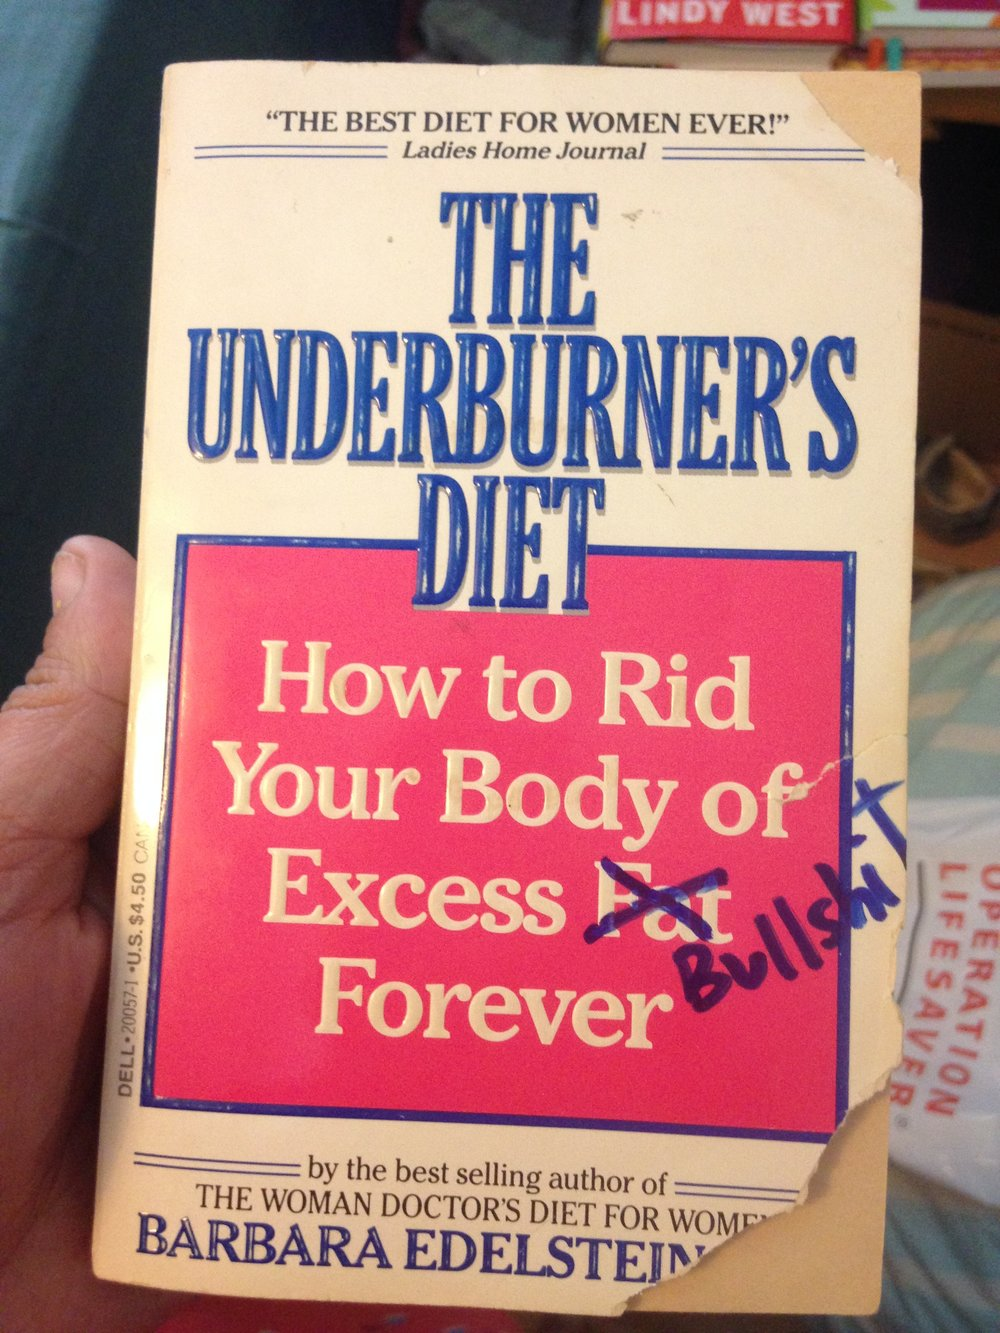 How To Rid Your Body of Excess Bullshit Forever